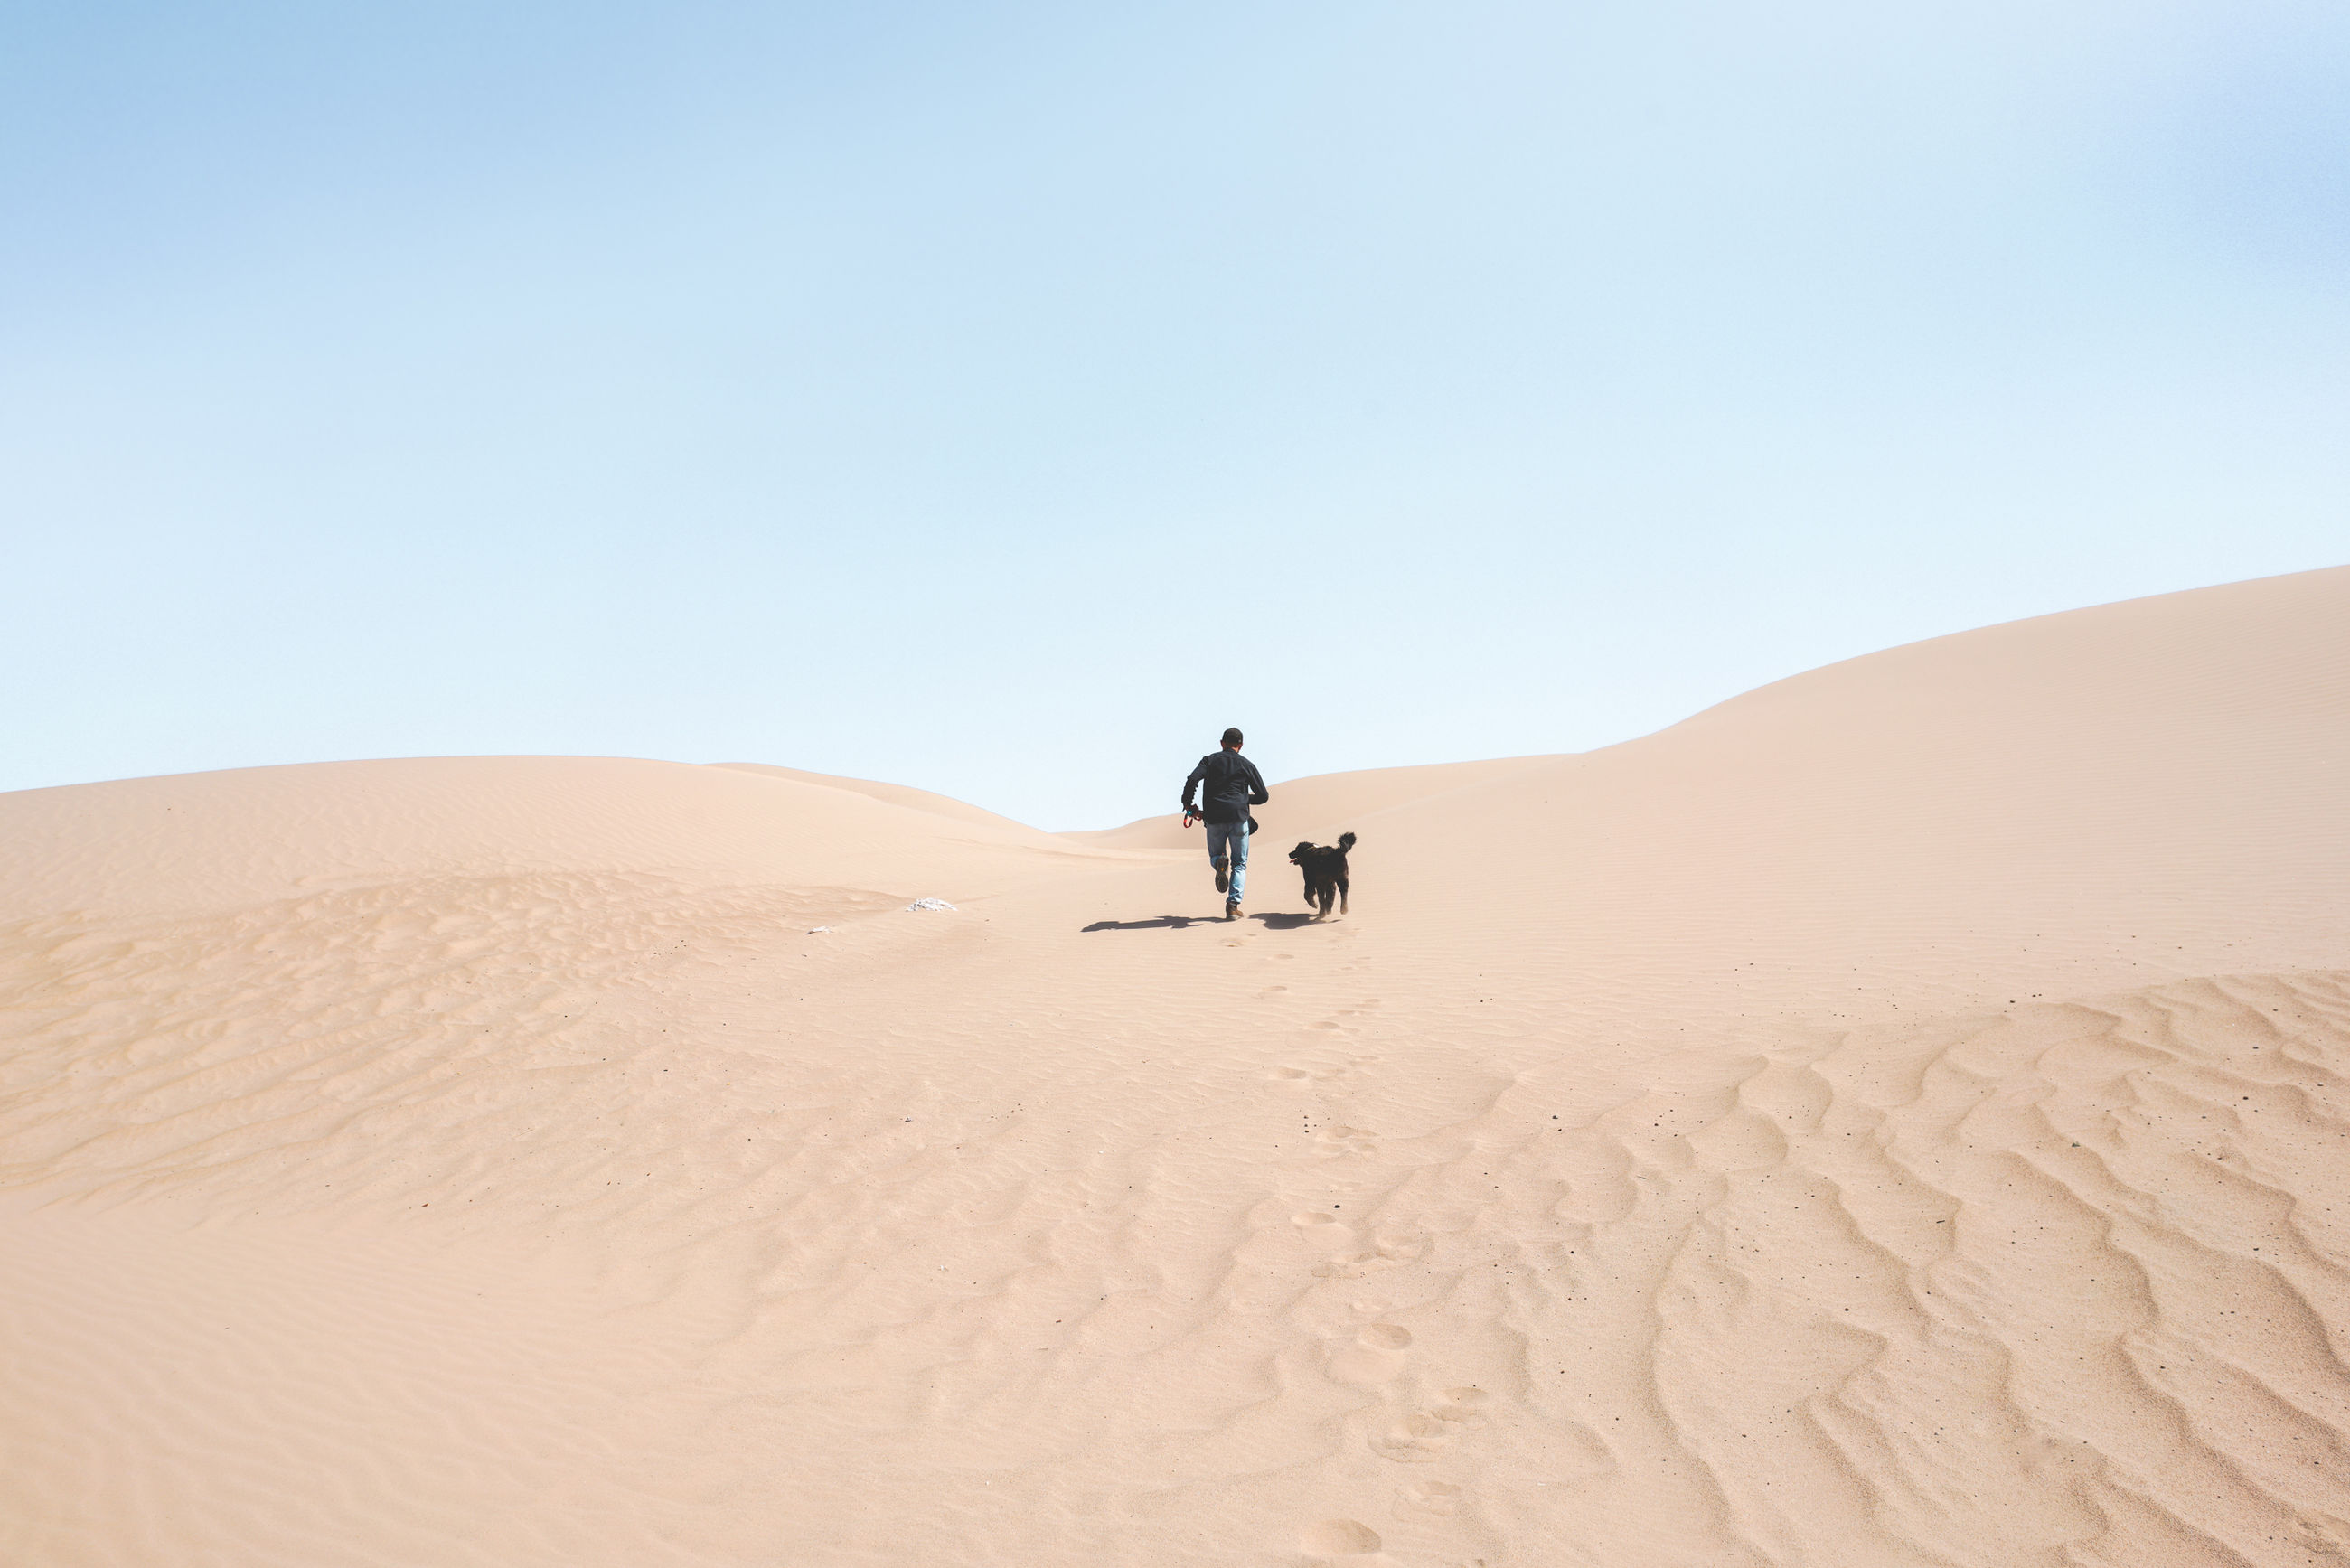 Man and dog on sand dune against clear sky